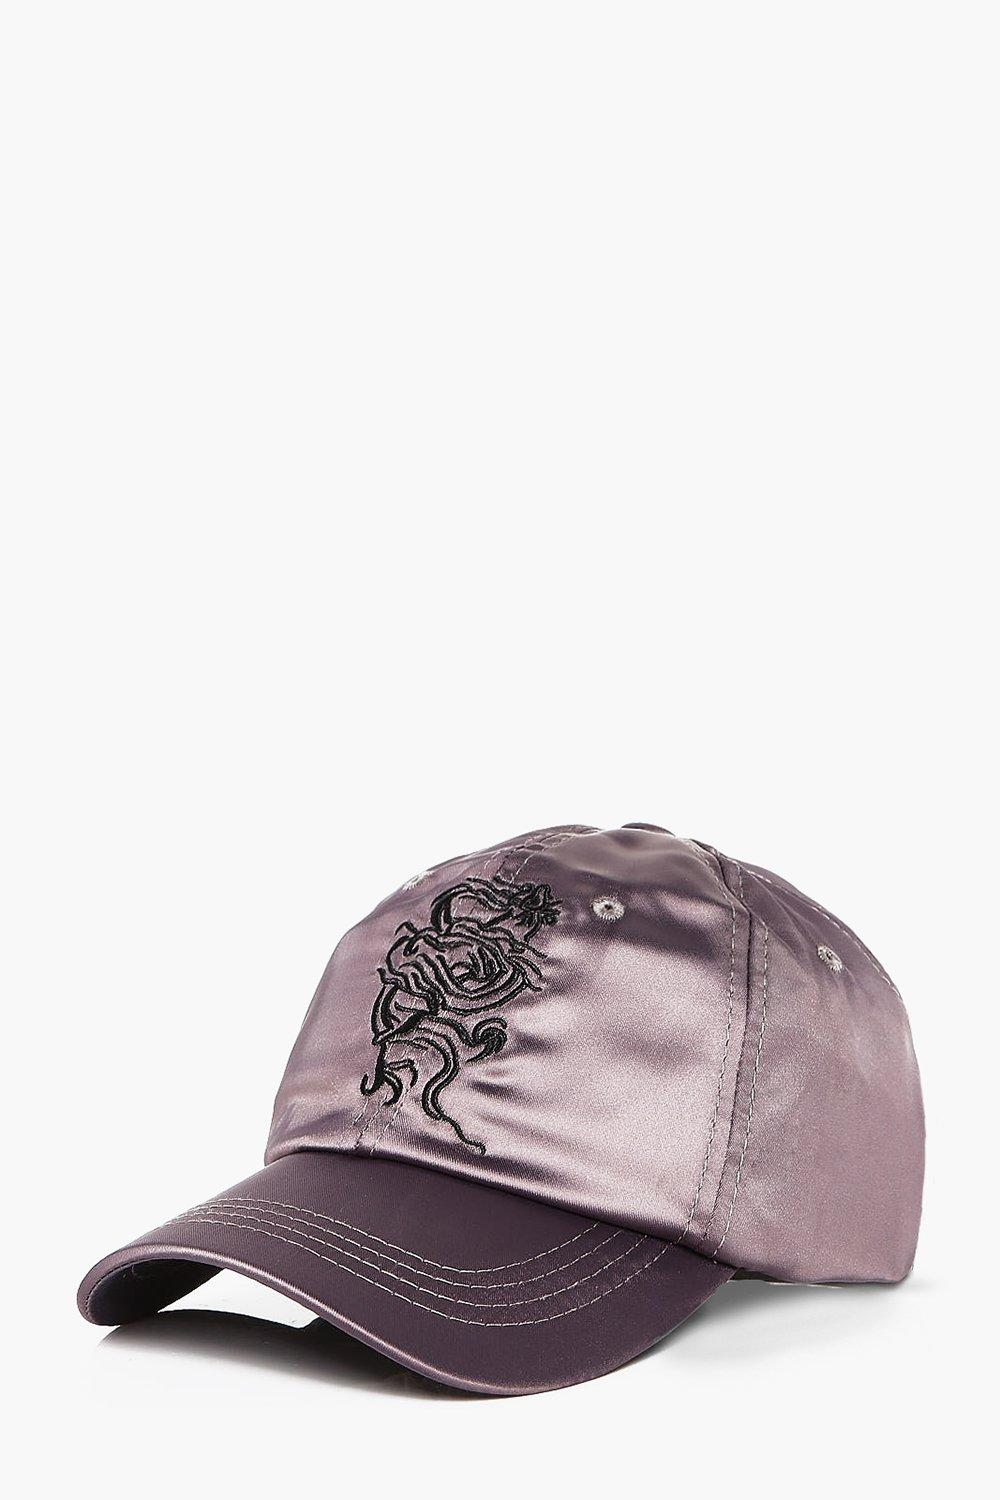 Embroidered Satin Cap - charcoal - Dragon Embroide